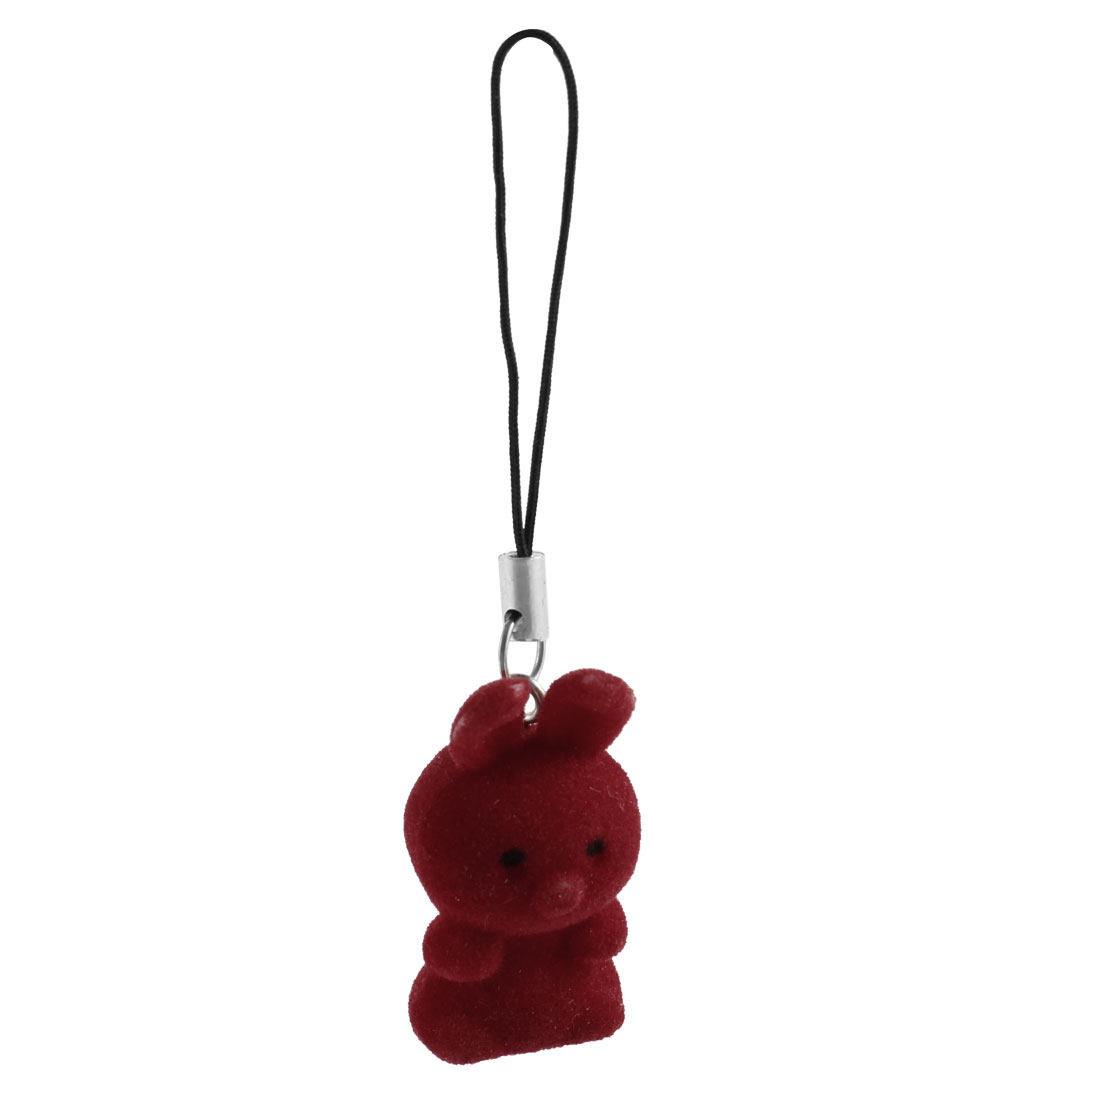 Red Flannel Design Rabbit Mobile Cell Phone Handbag Charm Strap